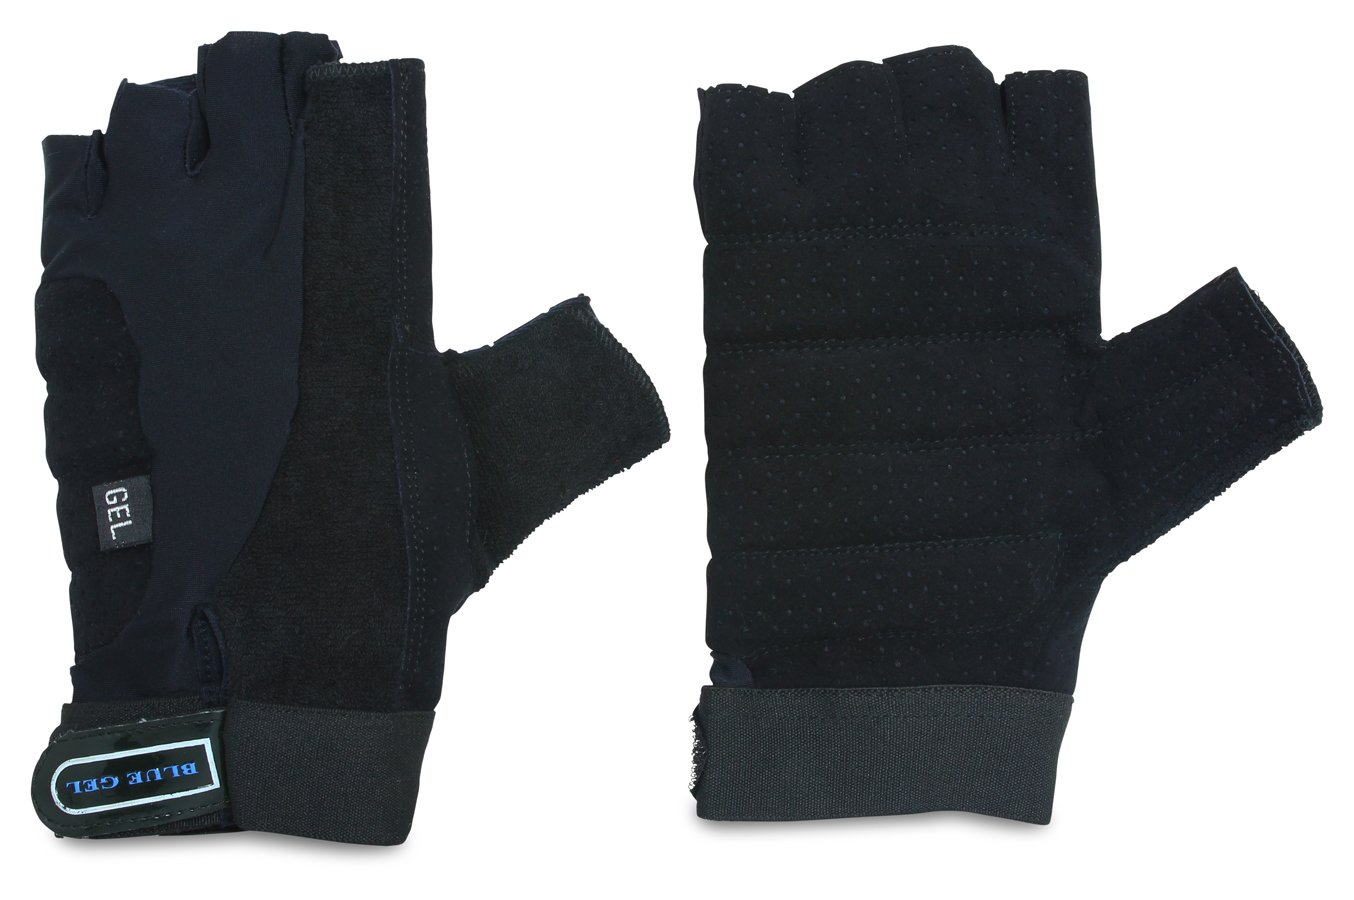 Blue Gel BUMP Hand Protection Anti-Vibration Gloves, X-Large